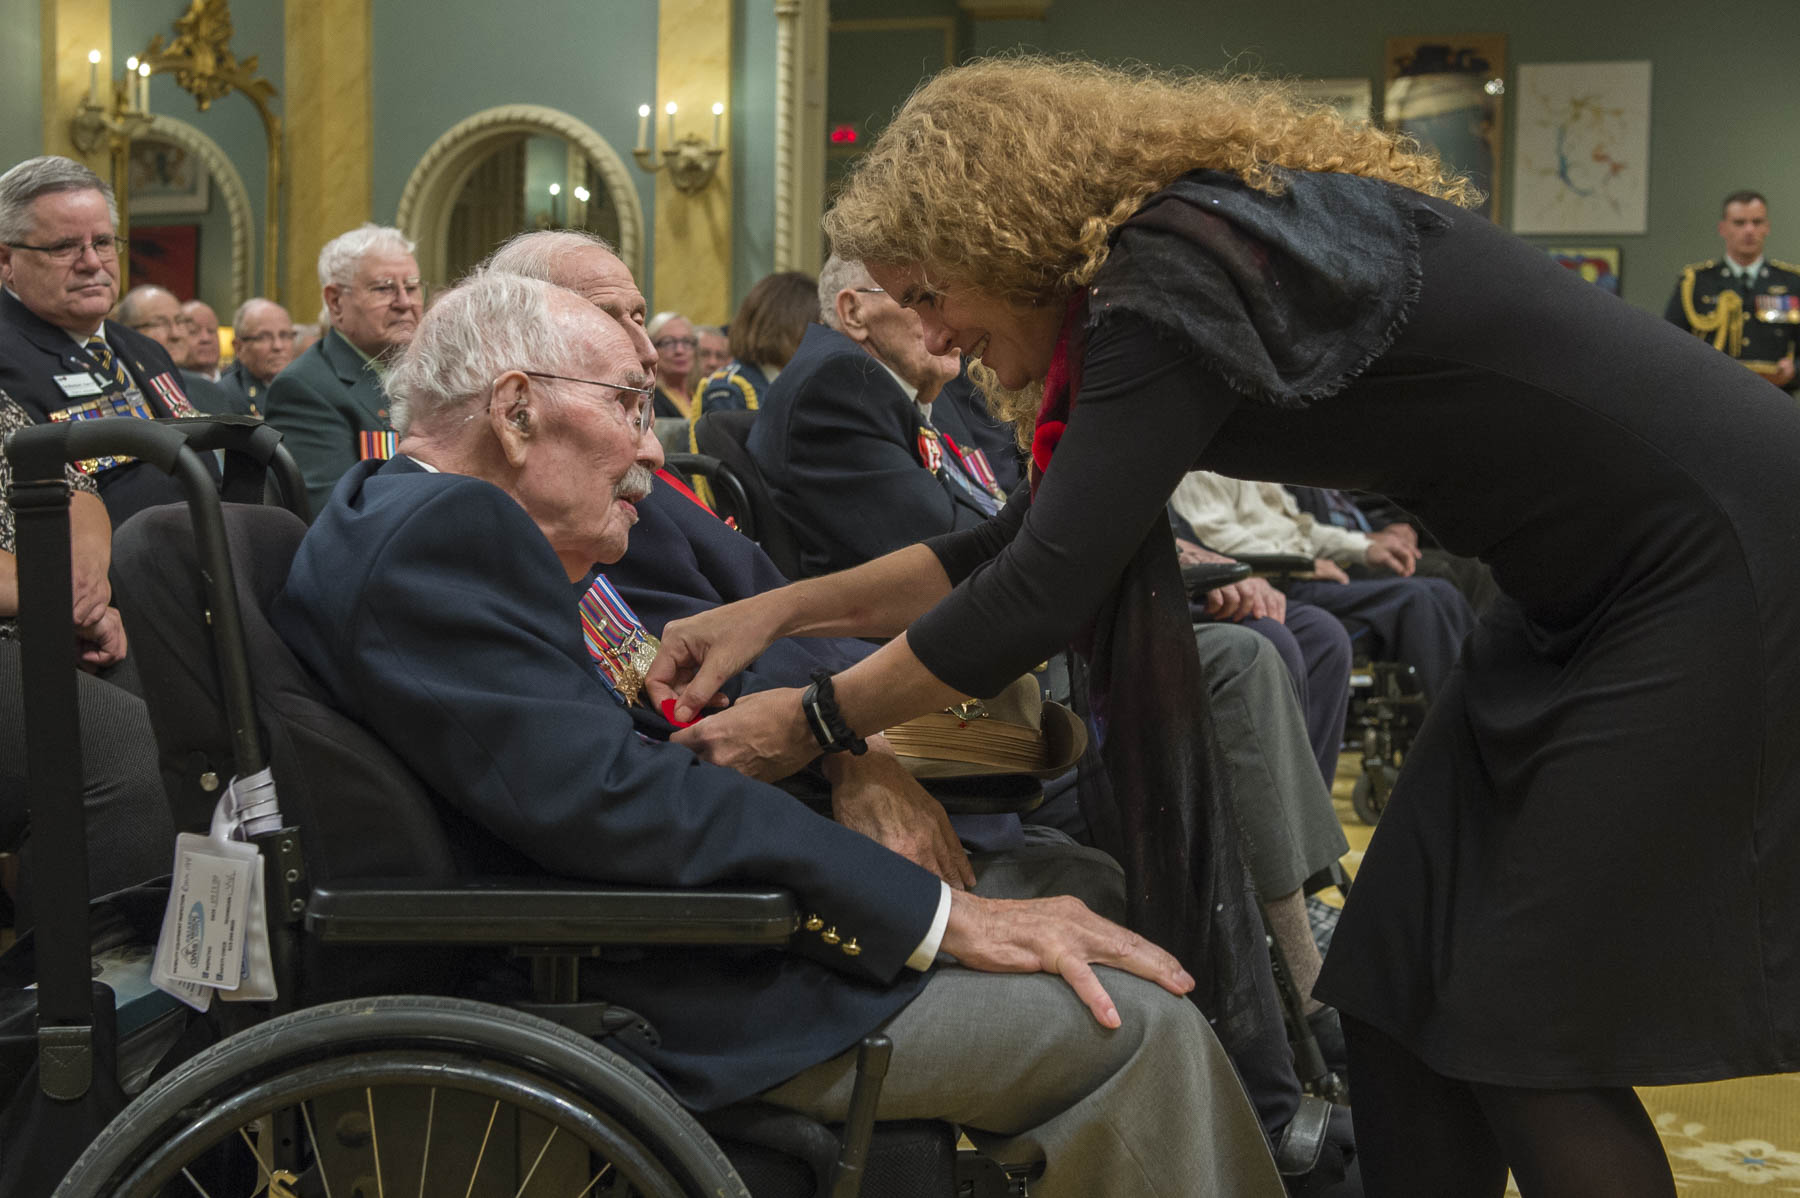 Her Excellency also presented the poppy to Canadian veterans who attended the ceremony.